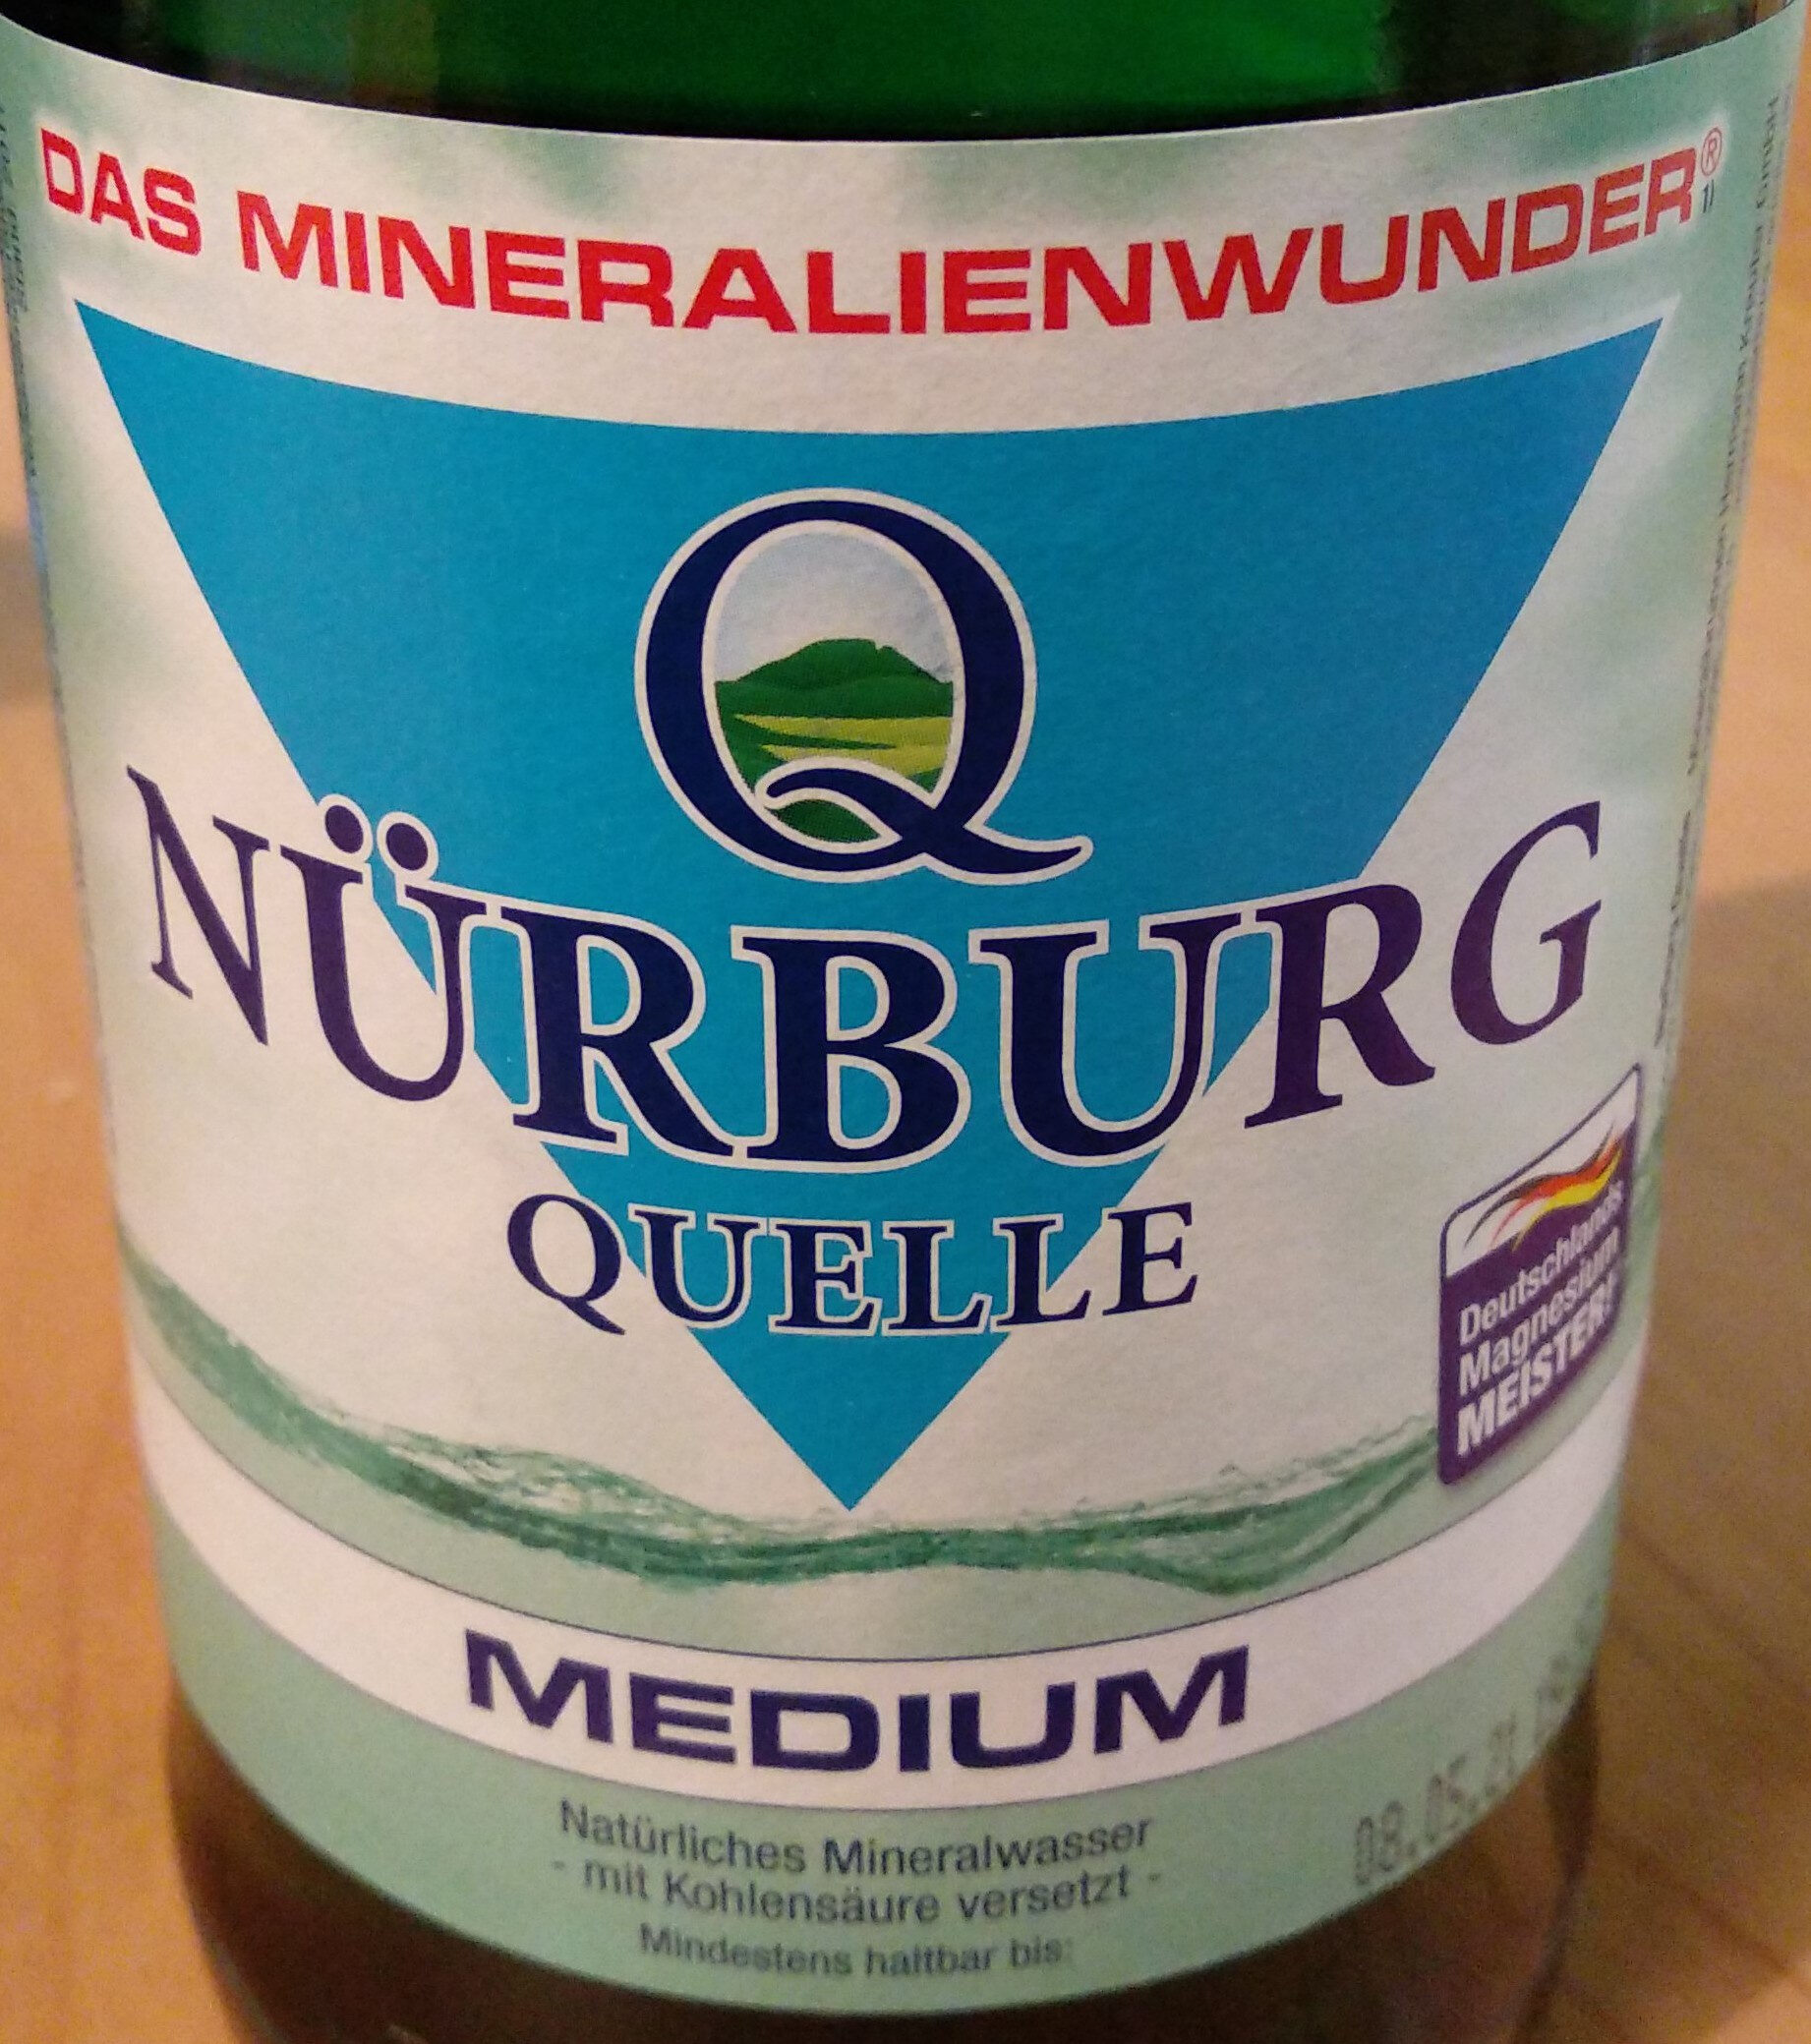 Nürburg Quelle Medium - Produkt - de